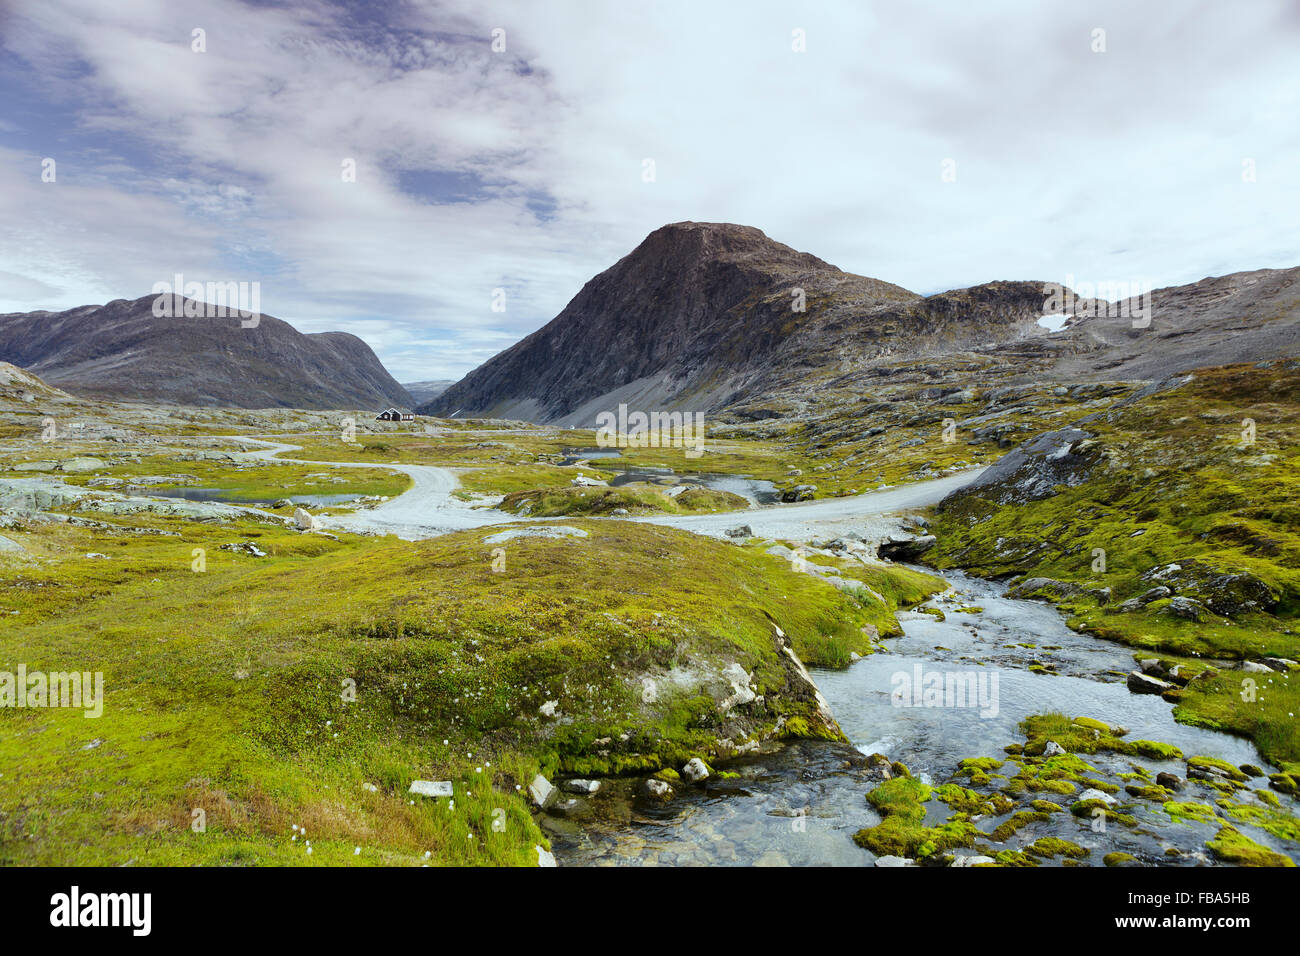 Norway, More og Romsdal, Sunnmore, Scenic view of landscape - Stock Image